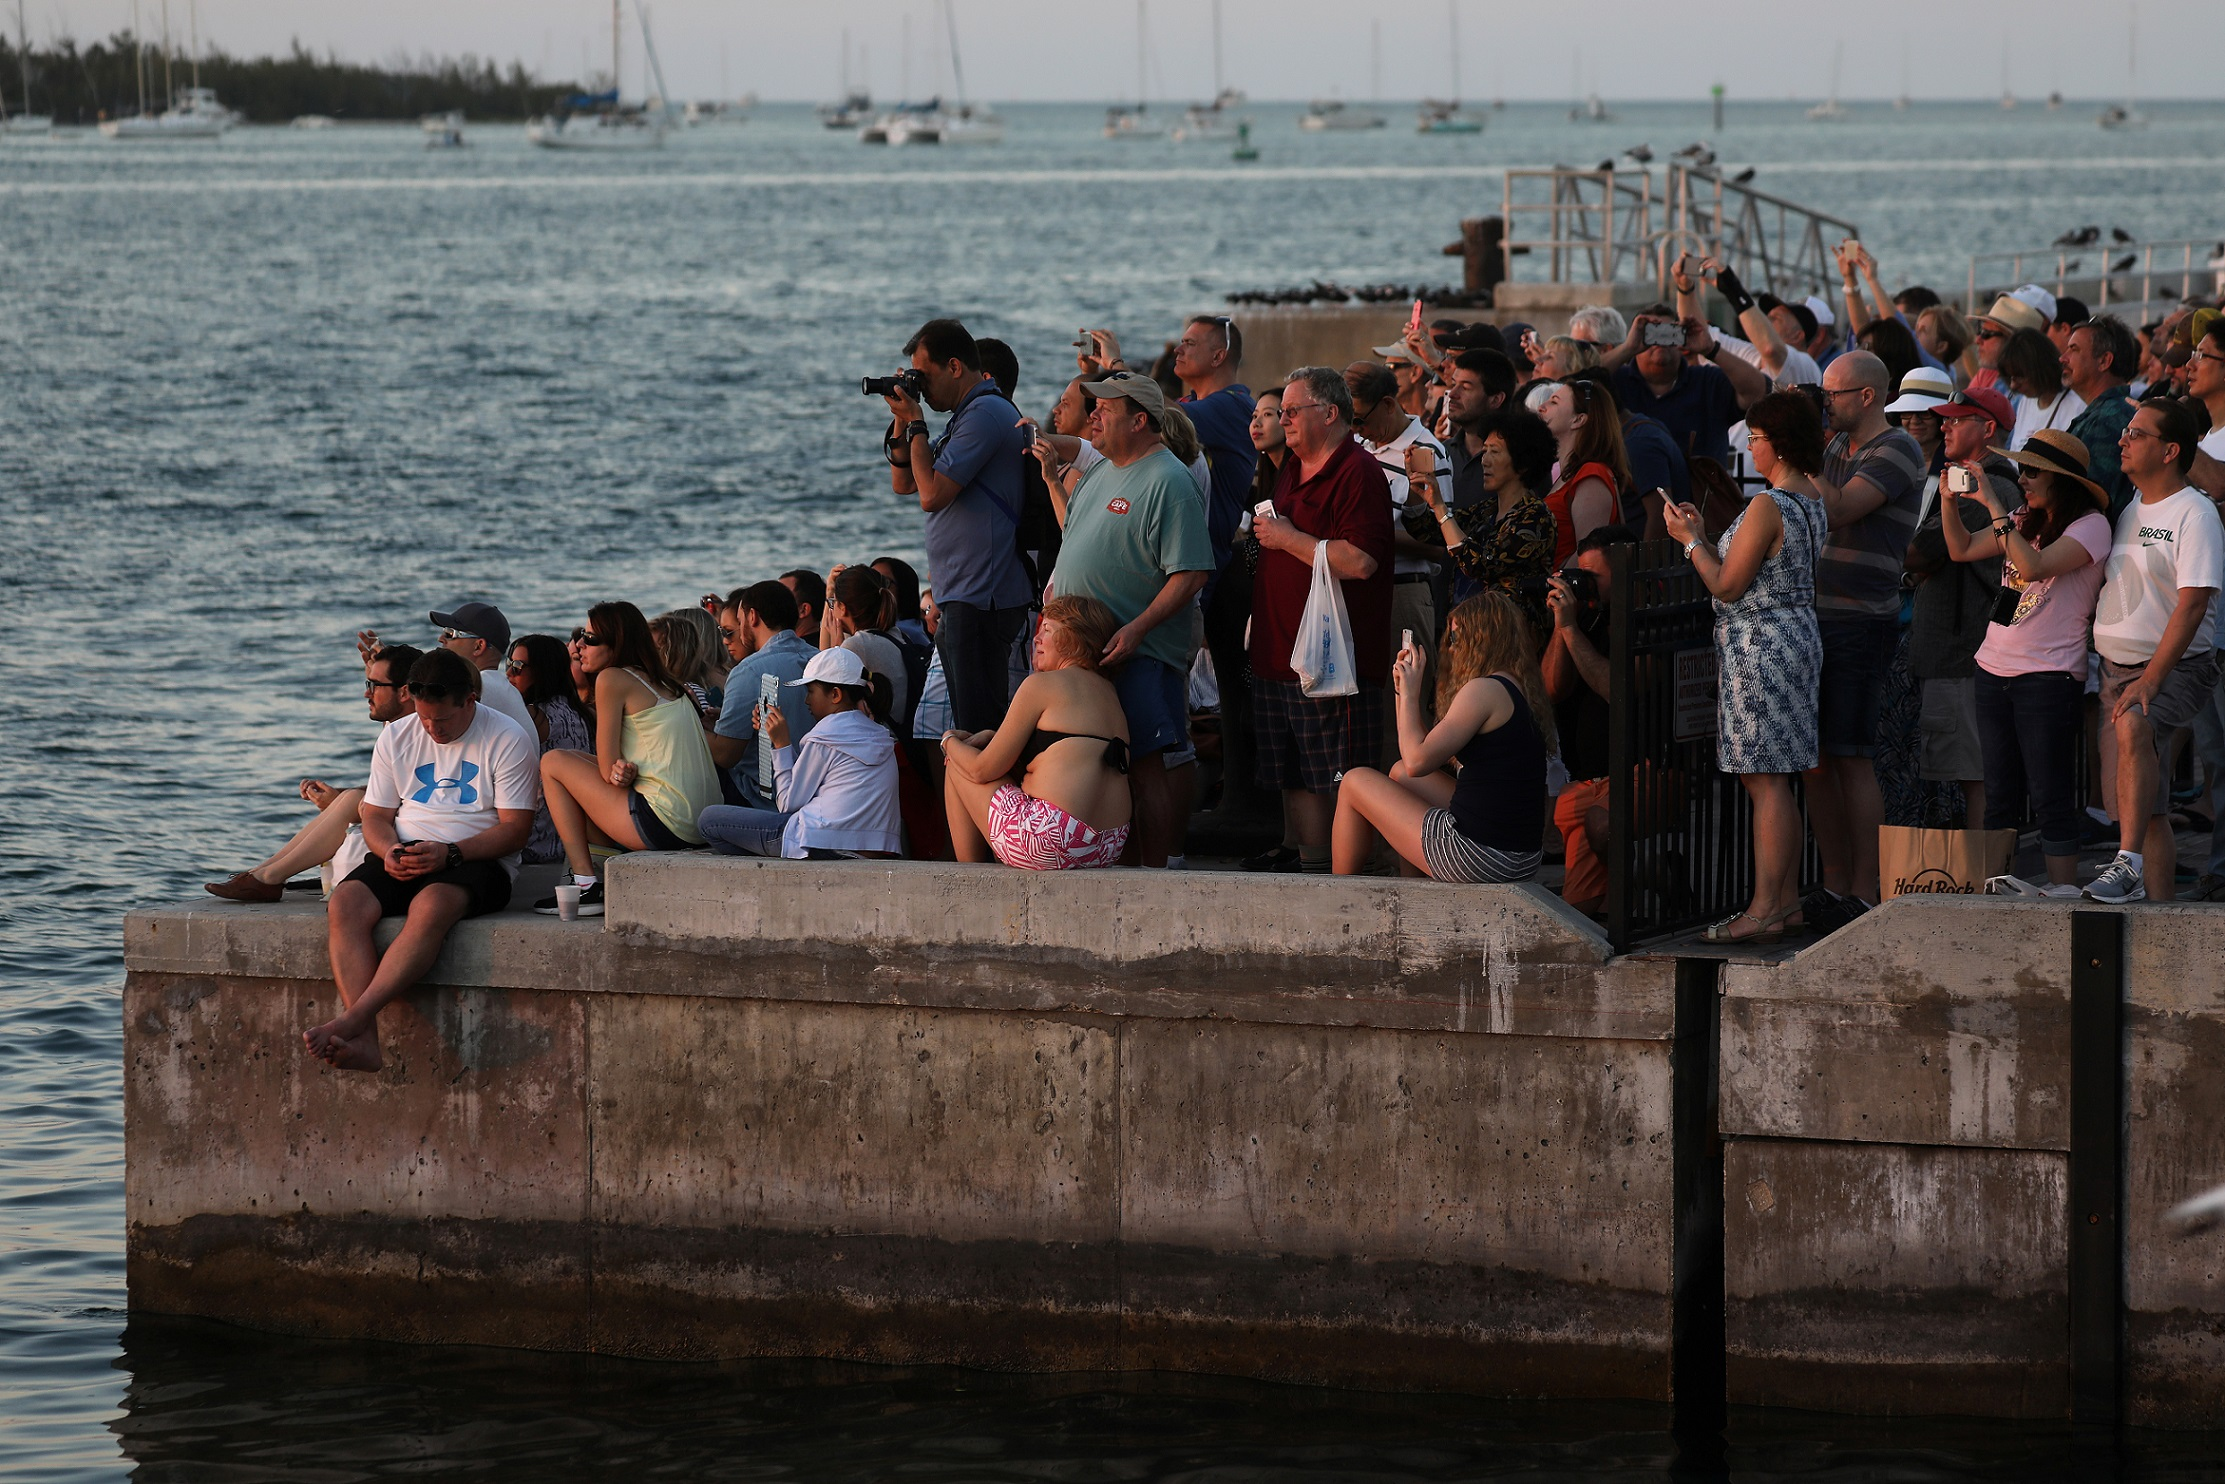 People take photos at sunset in Key West, Florida, U.S. February 5, 2017.   REUTERS/Carlo Allegri - RTX2ZRG2